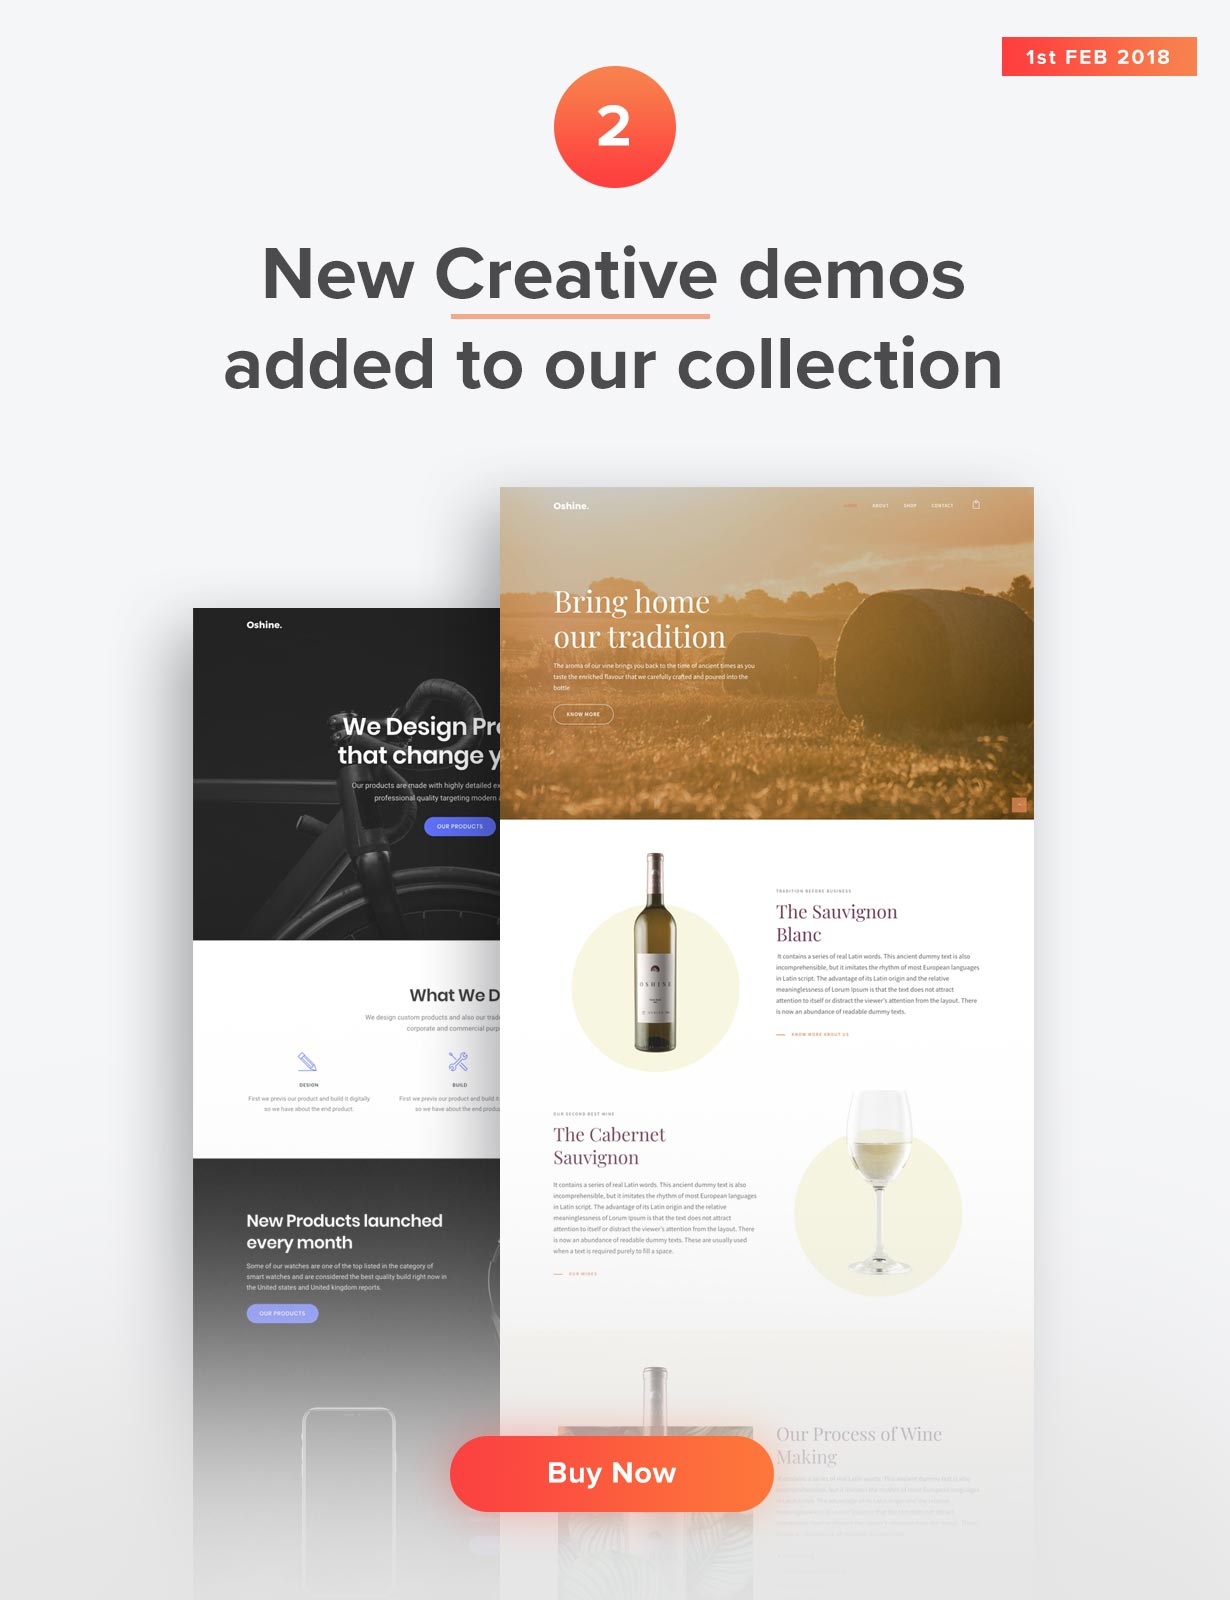 Oshine - Winery and Product Design Demos added